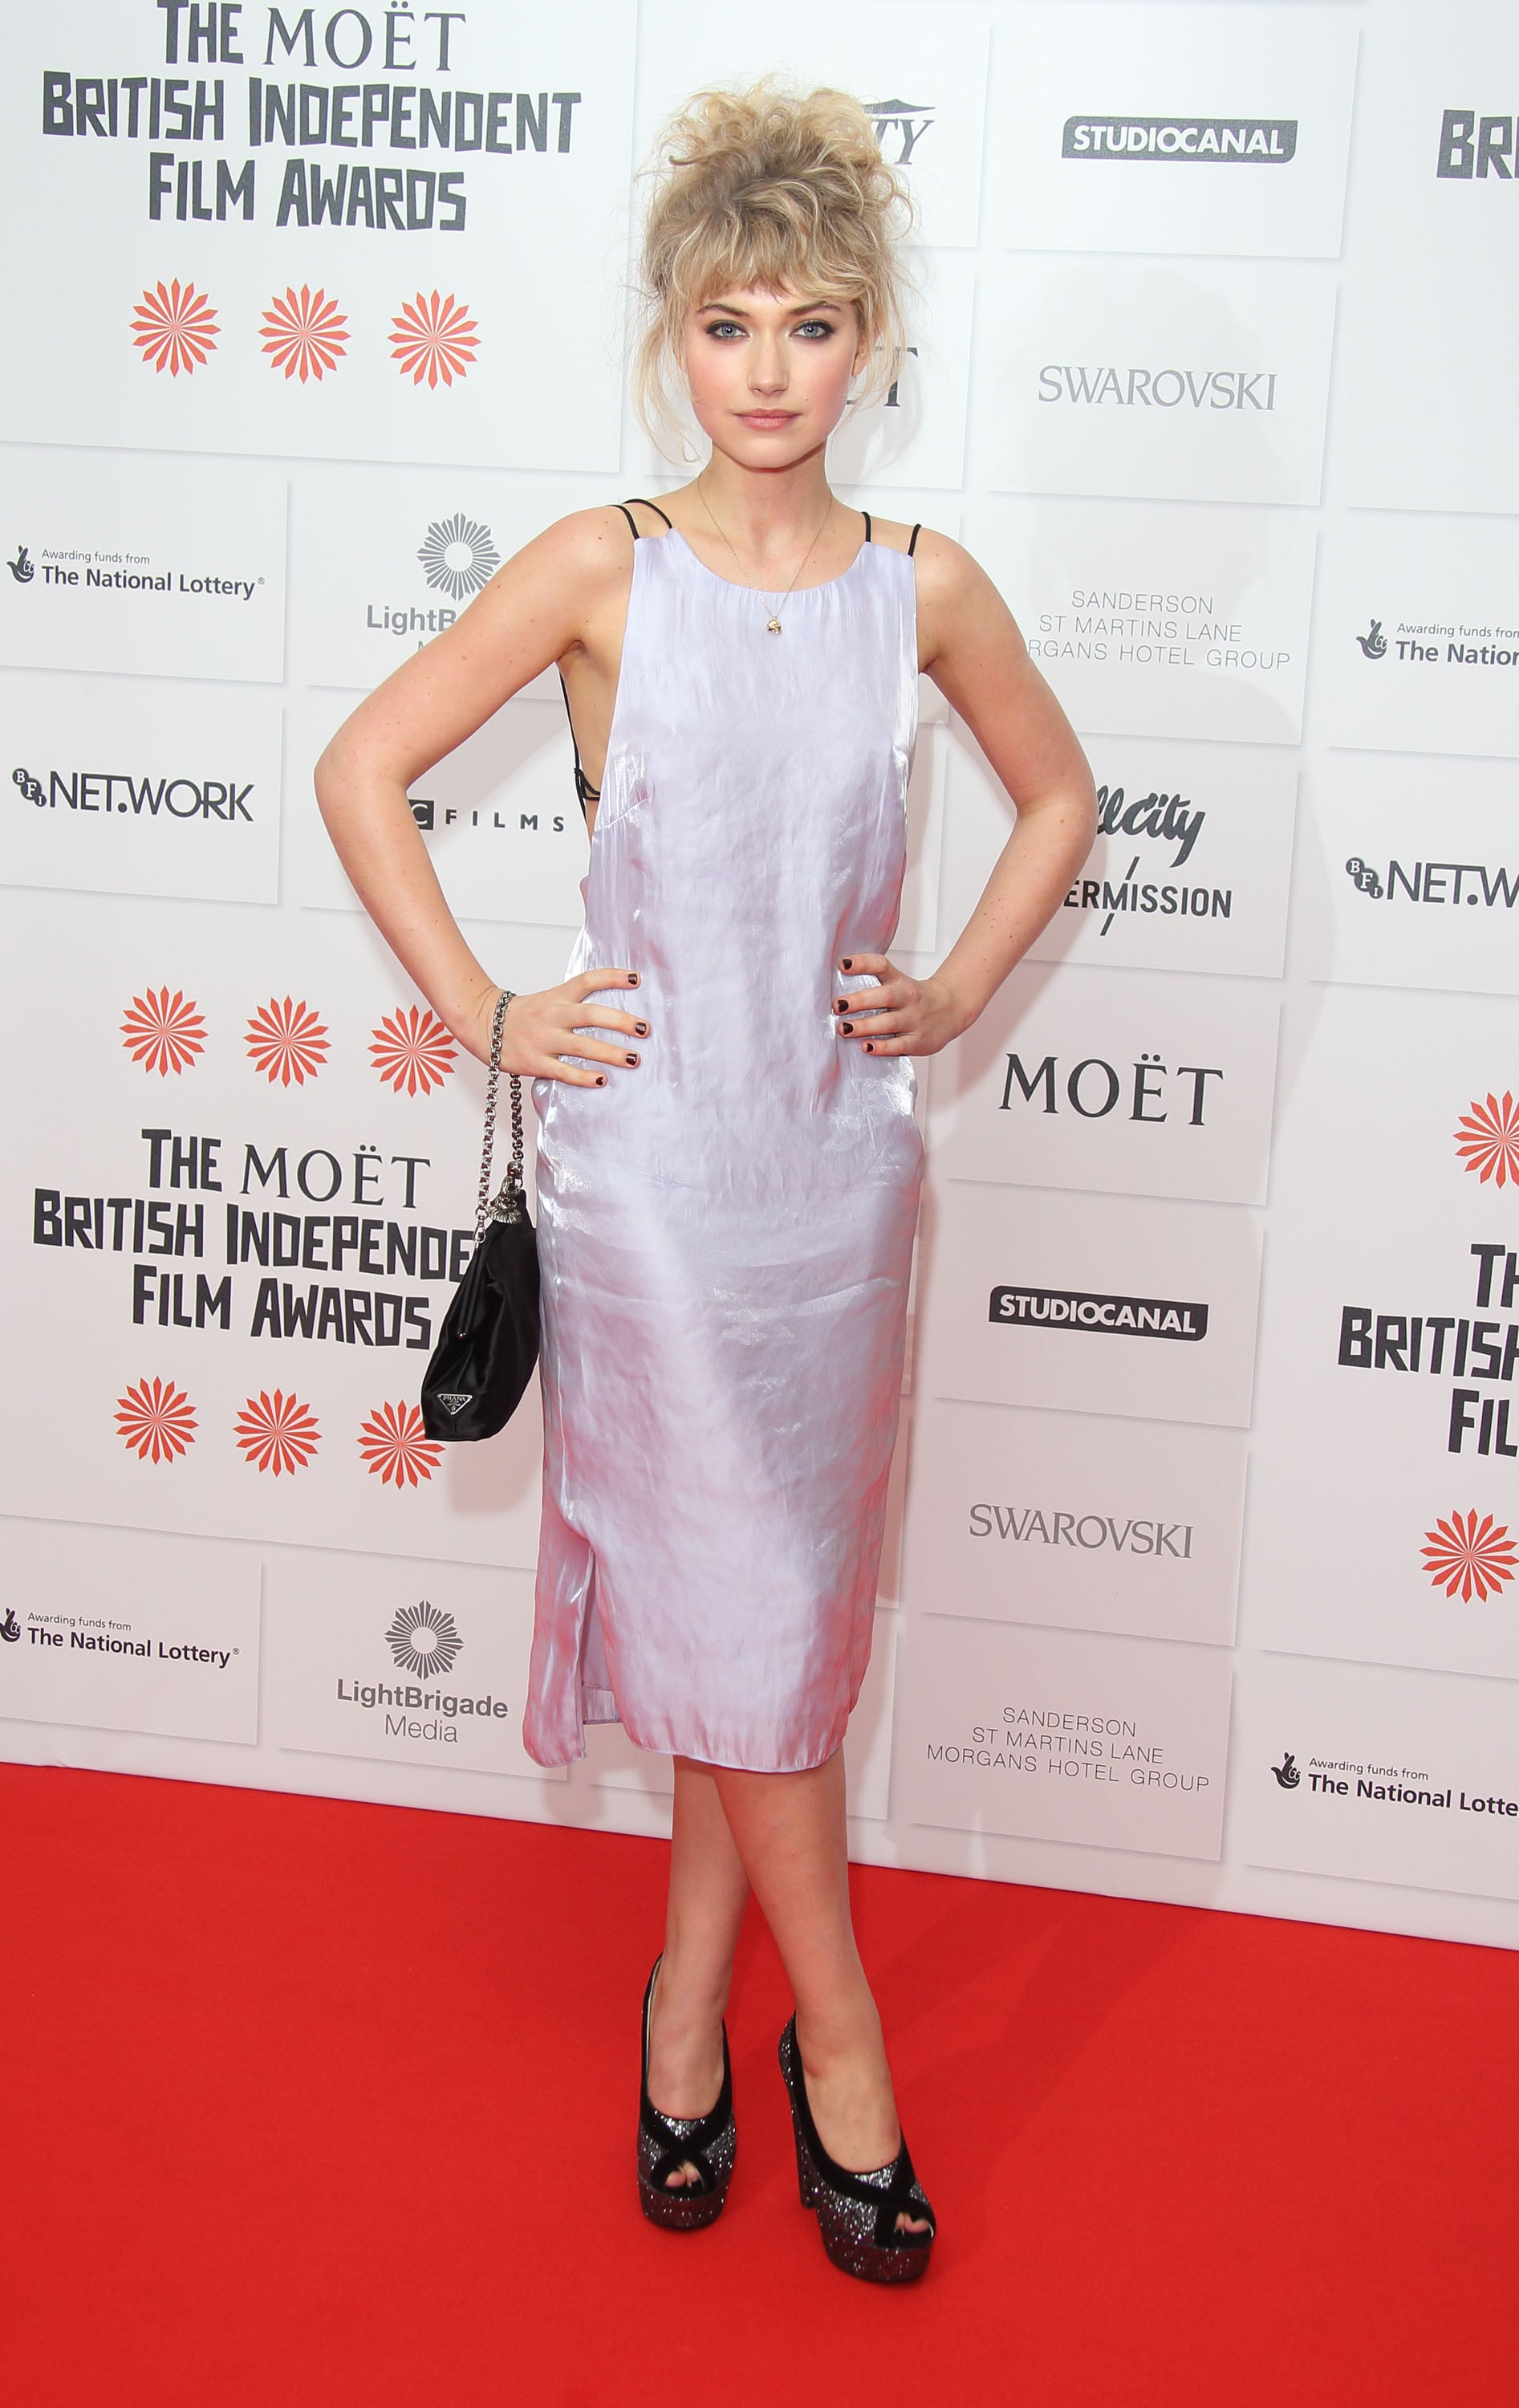 Here's a closer look at Imogen's silver Rag & Bone dress, worn at the British Independent Film Awards.